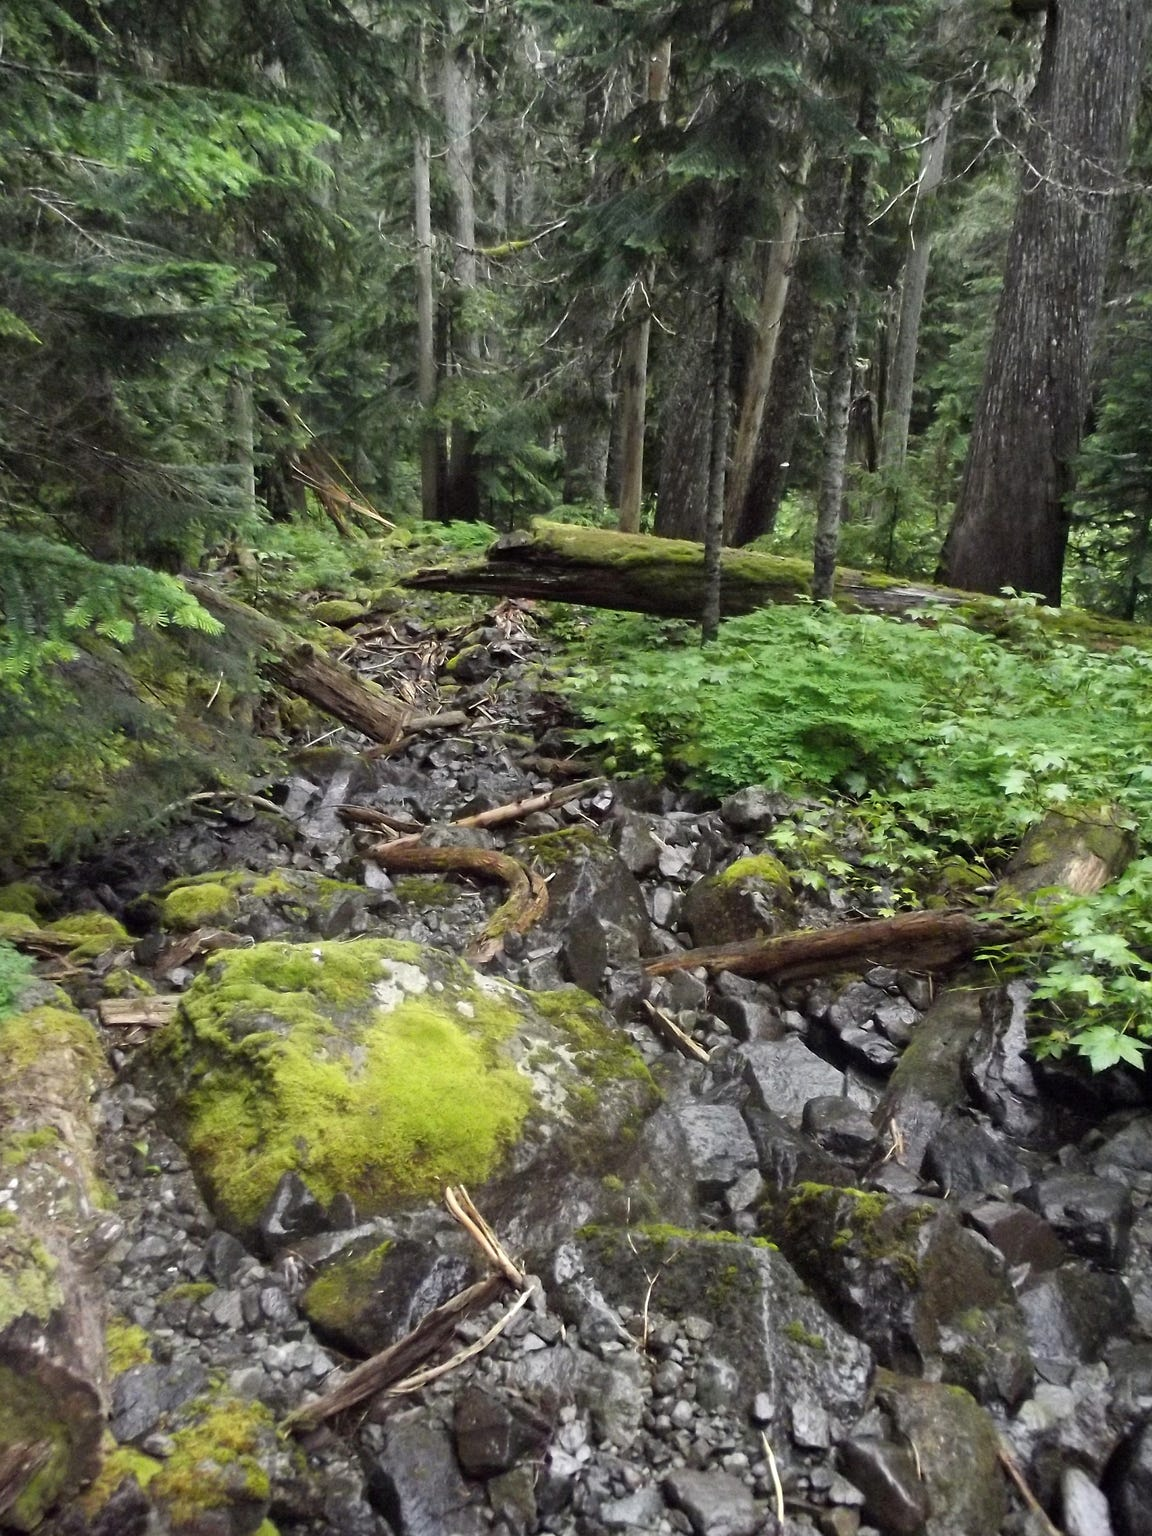 The terrain at Mt. rainier National Park is steep and